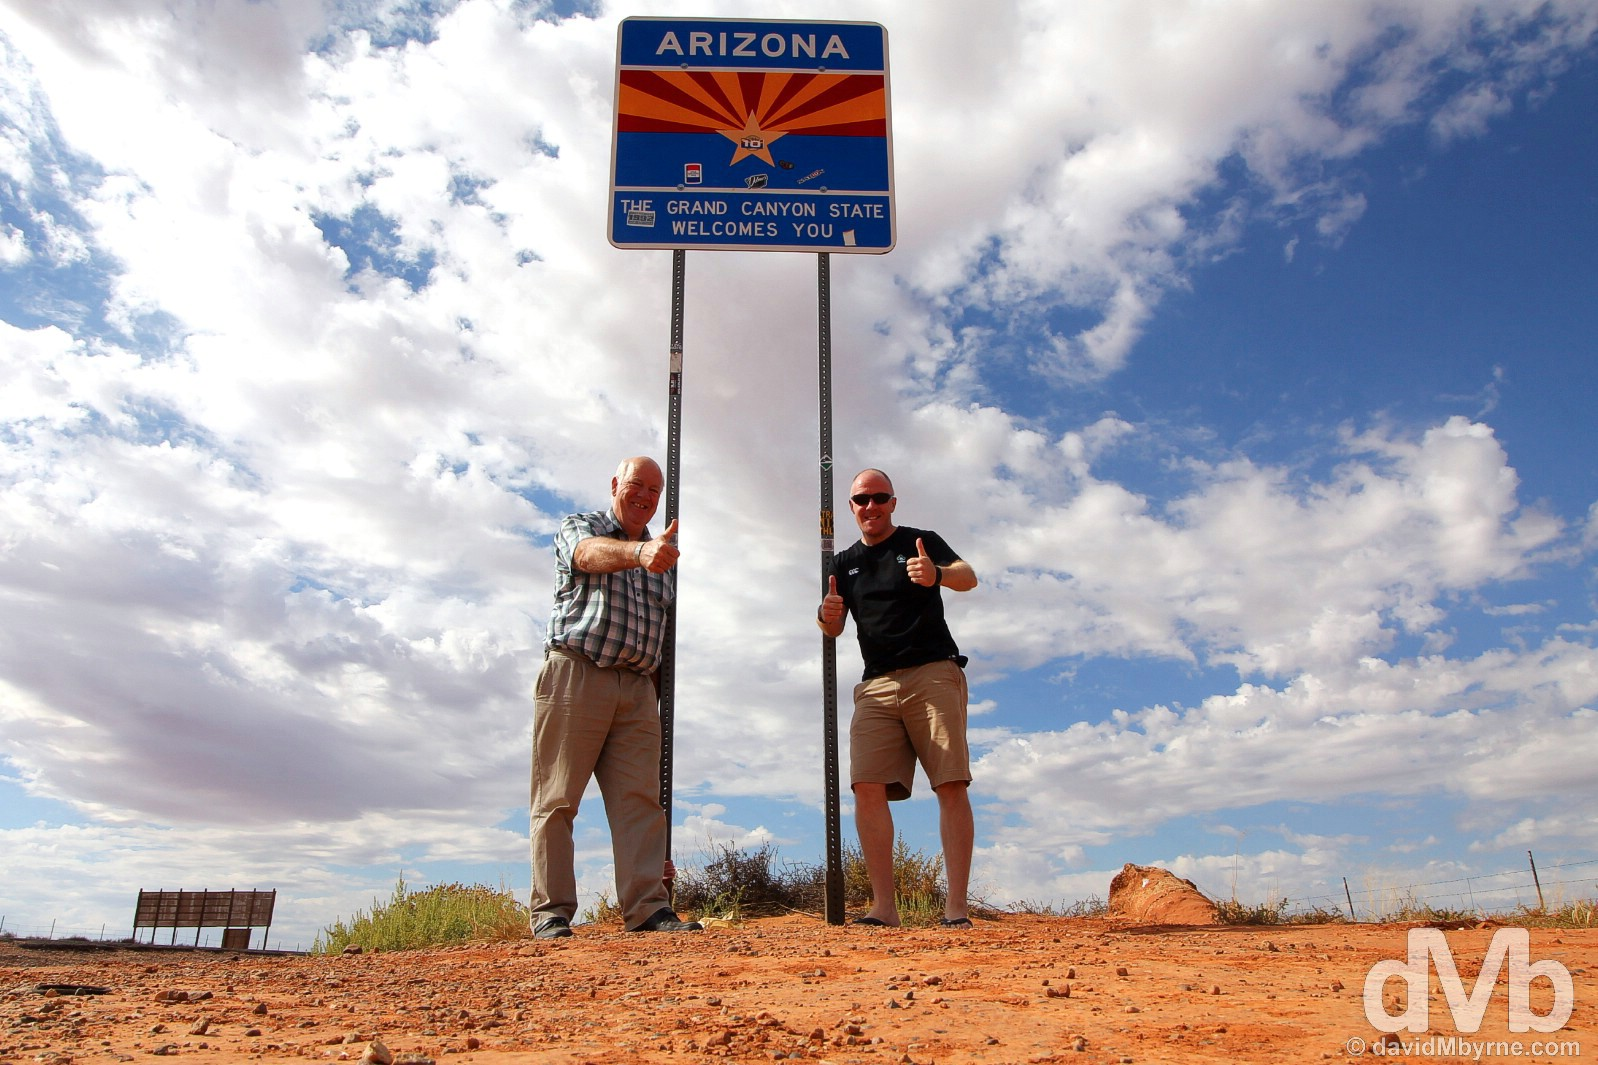 At the Arizona-Utah state line on US Route 163, Monument Valley, USA. September 11, 2016.